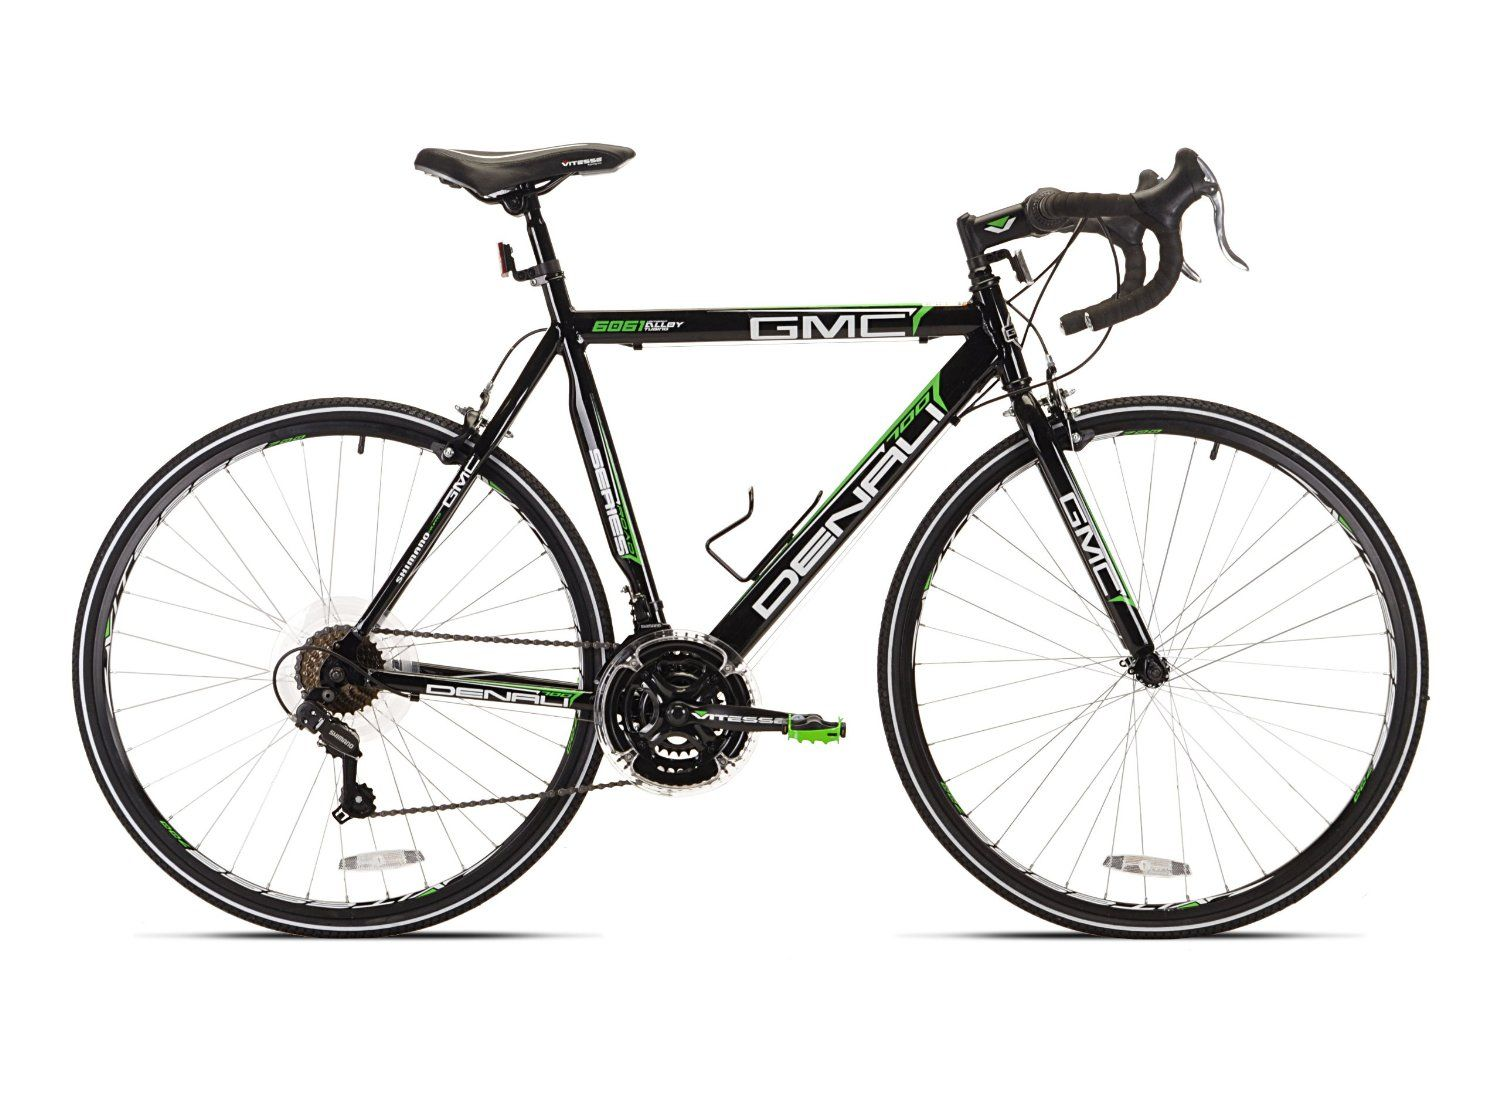 Amazon Com Gmc Denali Road Bike Black Green 20 Inch Small Road Bicycles Sports Outdoors Best Road Bike Road Racing Bike Racing Bikes